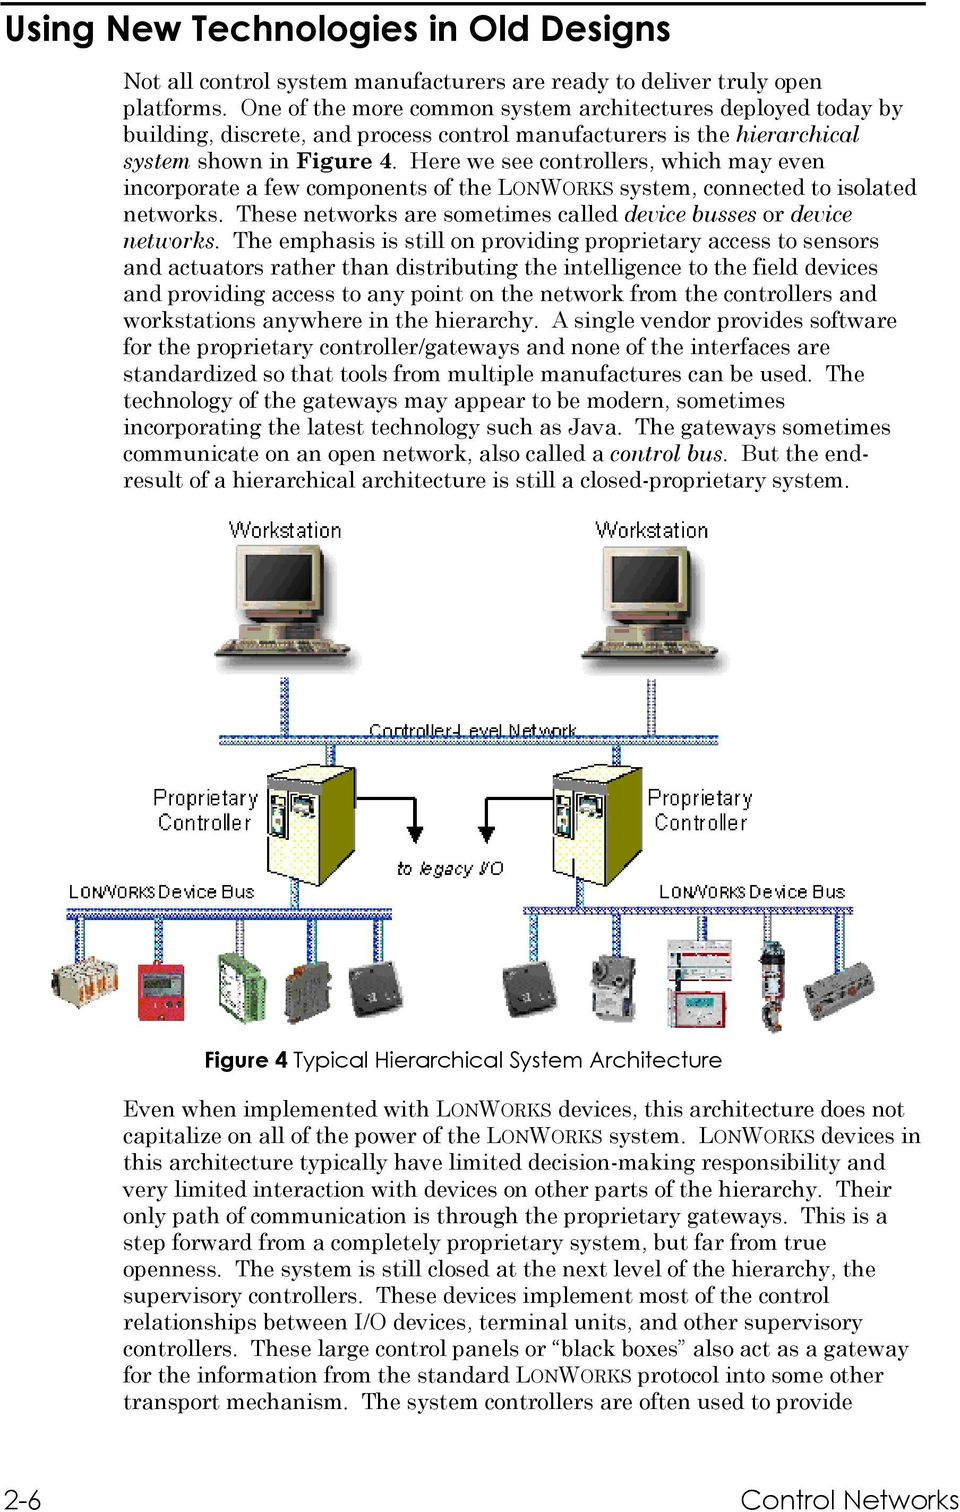 Here we see controllers, which may even incorporate a few components of the LONWORKS system, connected to isolated networks. These networks are sometimes called device busses or device networks.